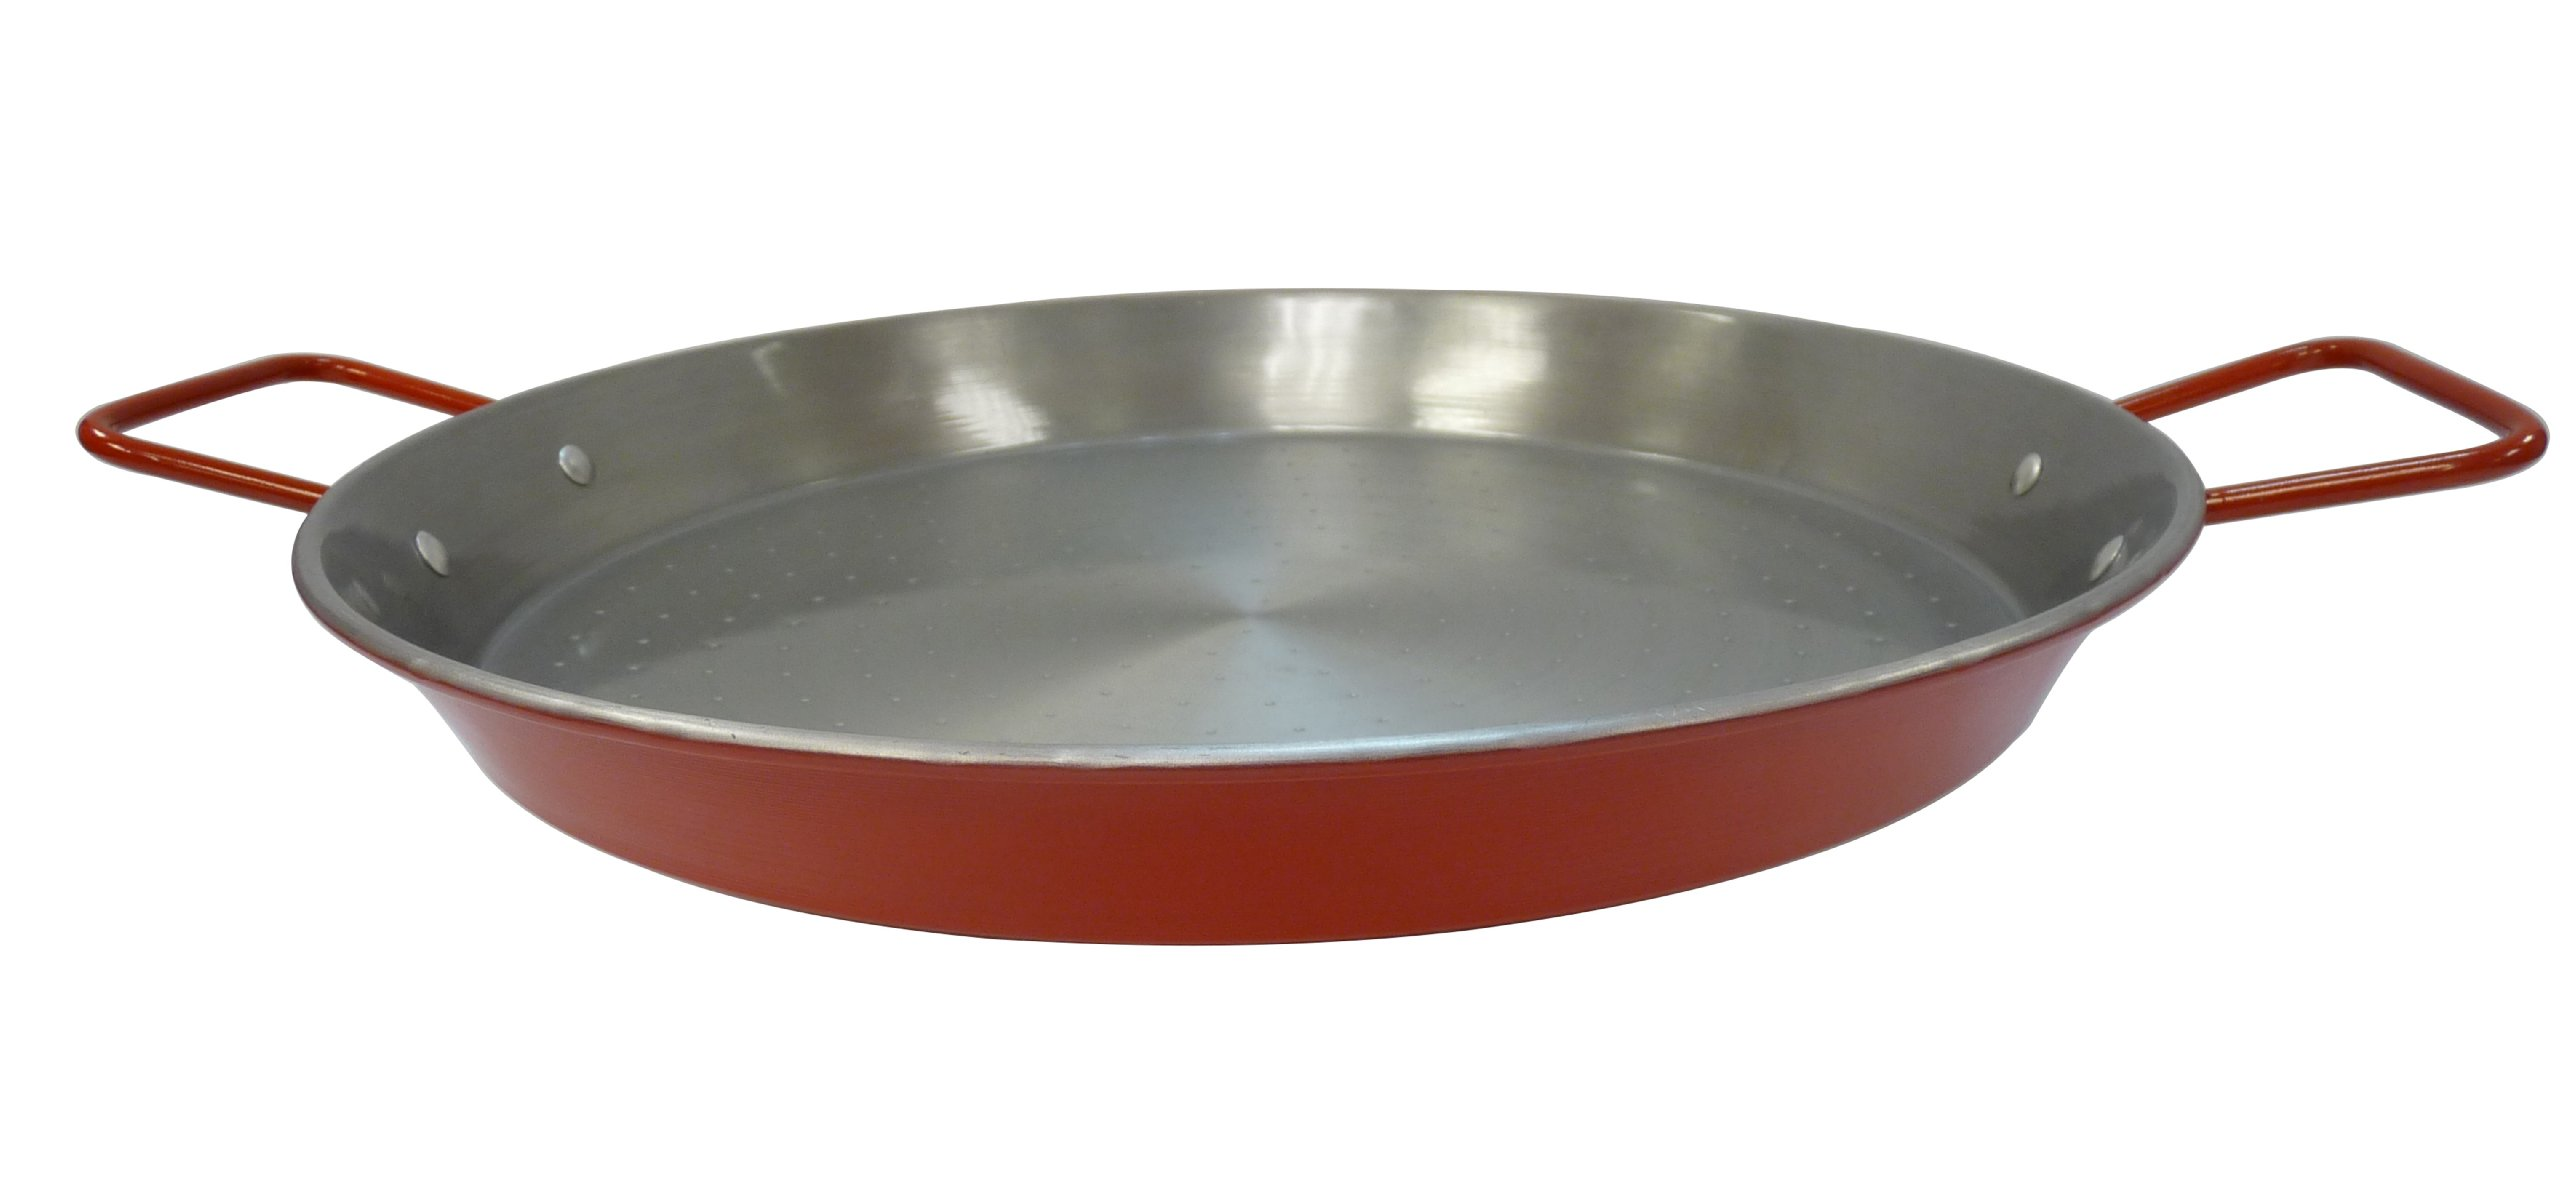 IMUSA USA CAR-52031T NonCoated Aluminized Paella Pan 15-Inch, Red